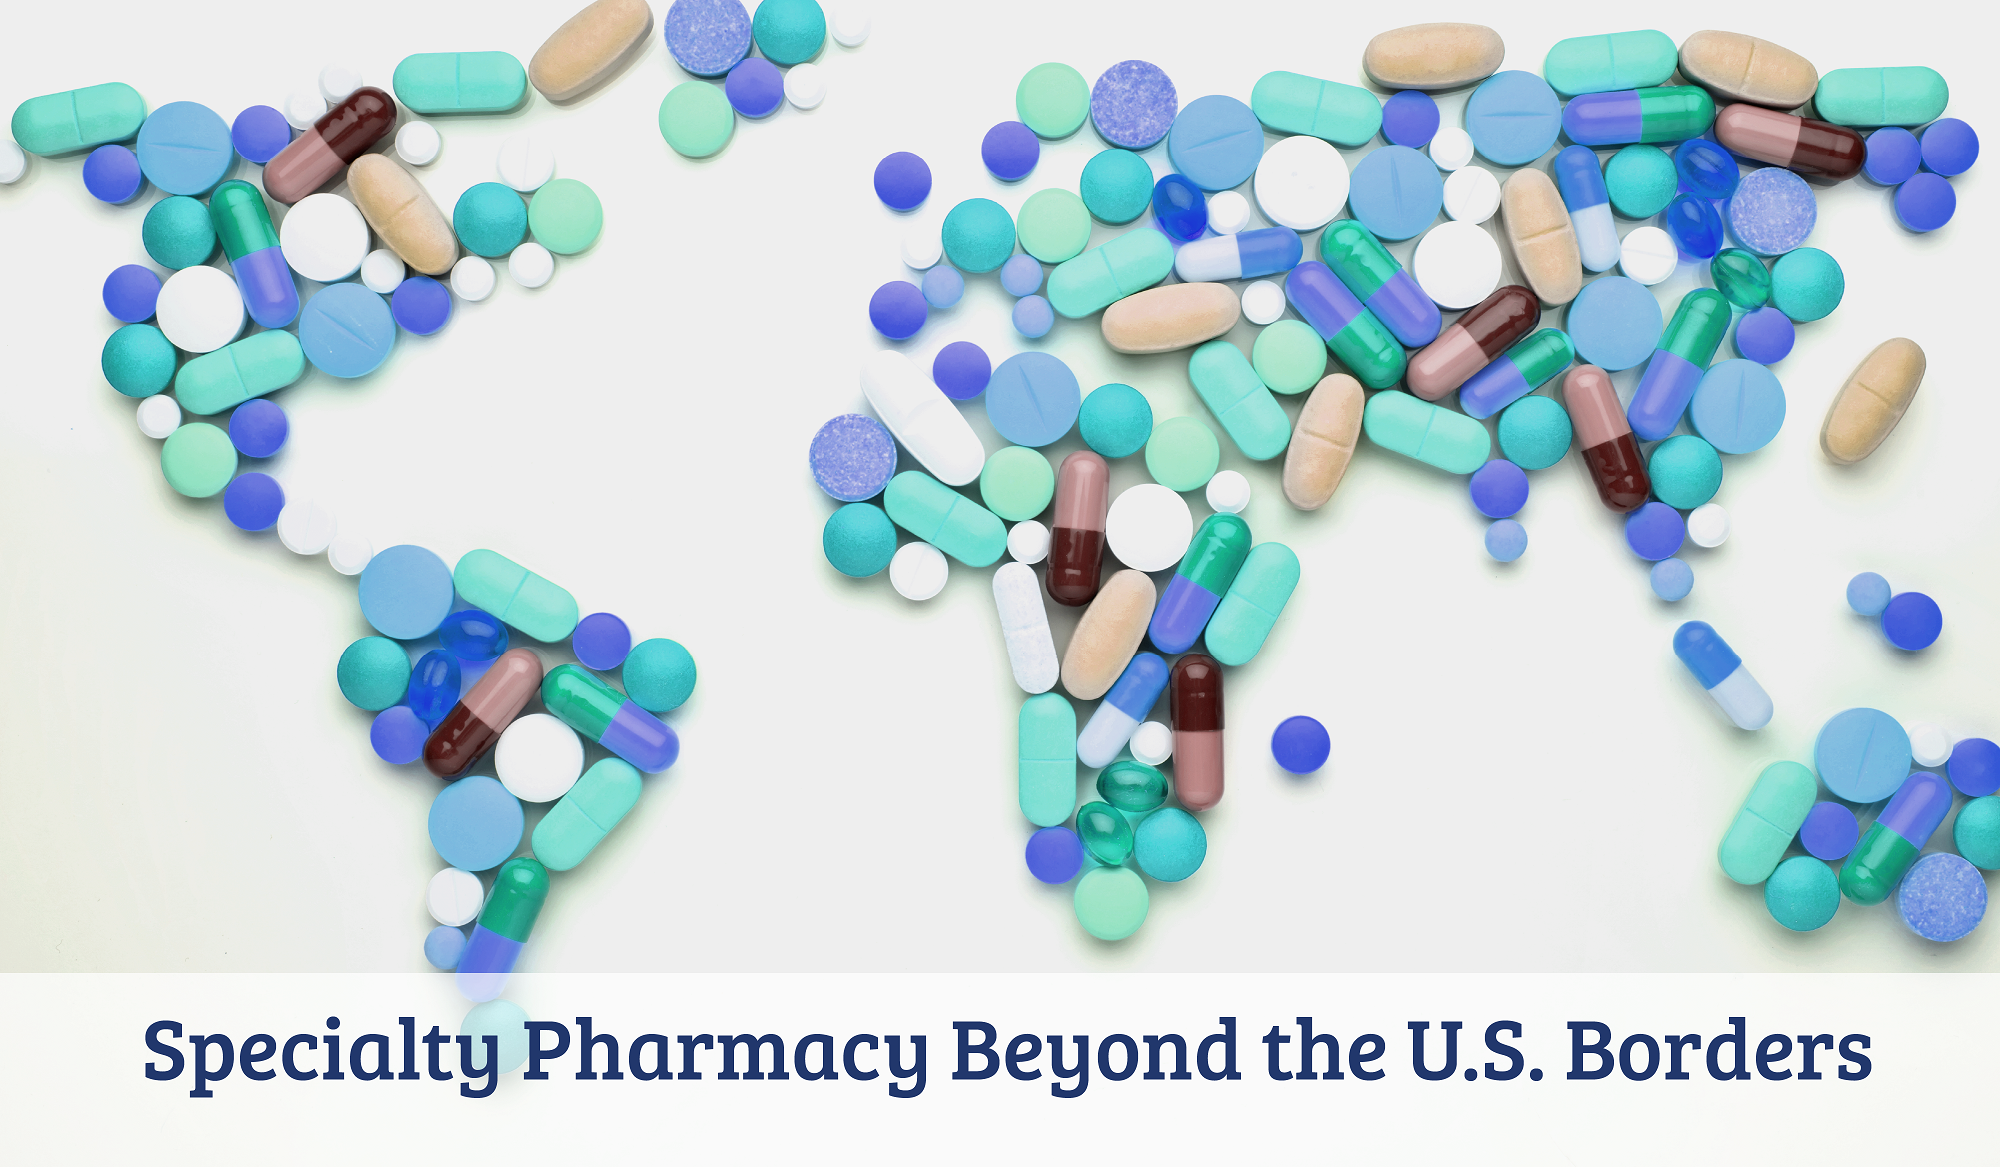 Specialty Pharmacy Beyond the U.S. Borders blog-01